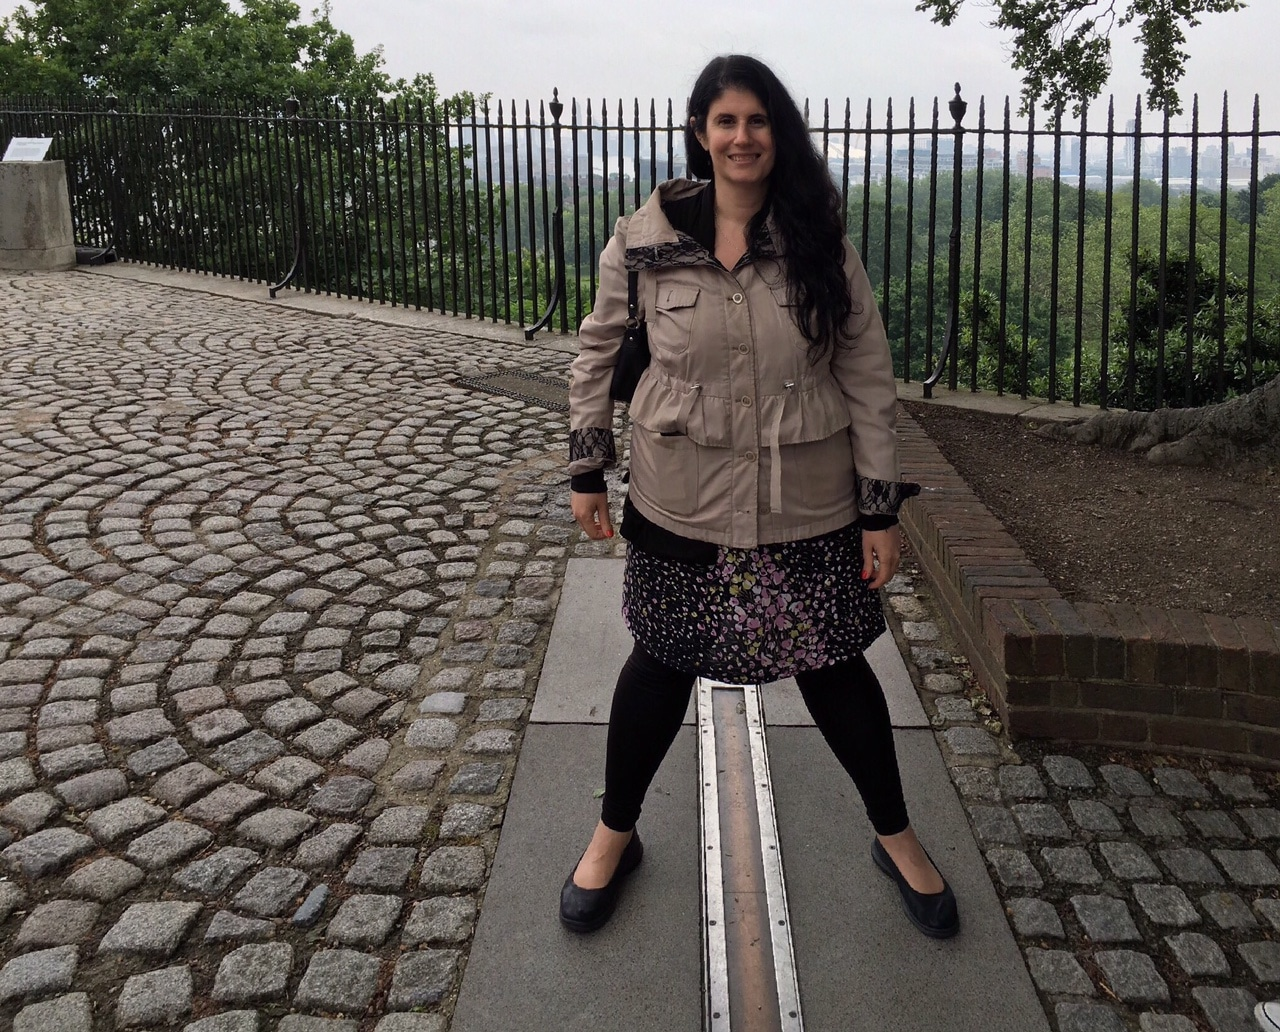 Anisa standing over the Prime Meridian at the Royal Greenwich Observatory. One foot in the Eastern Hemisphere and one foot in the Western Hemisphere.